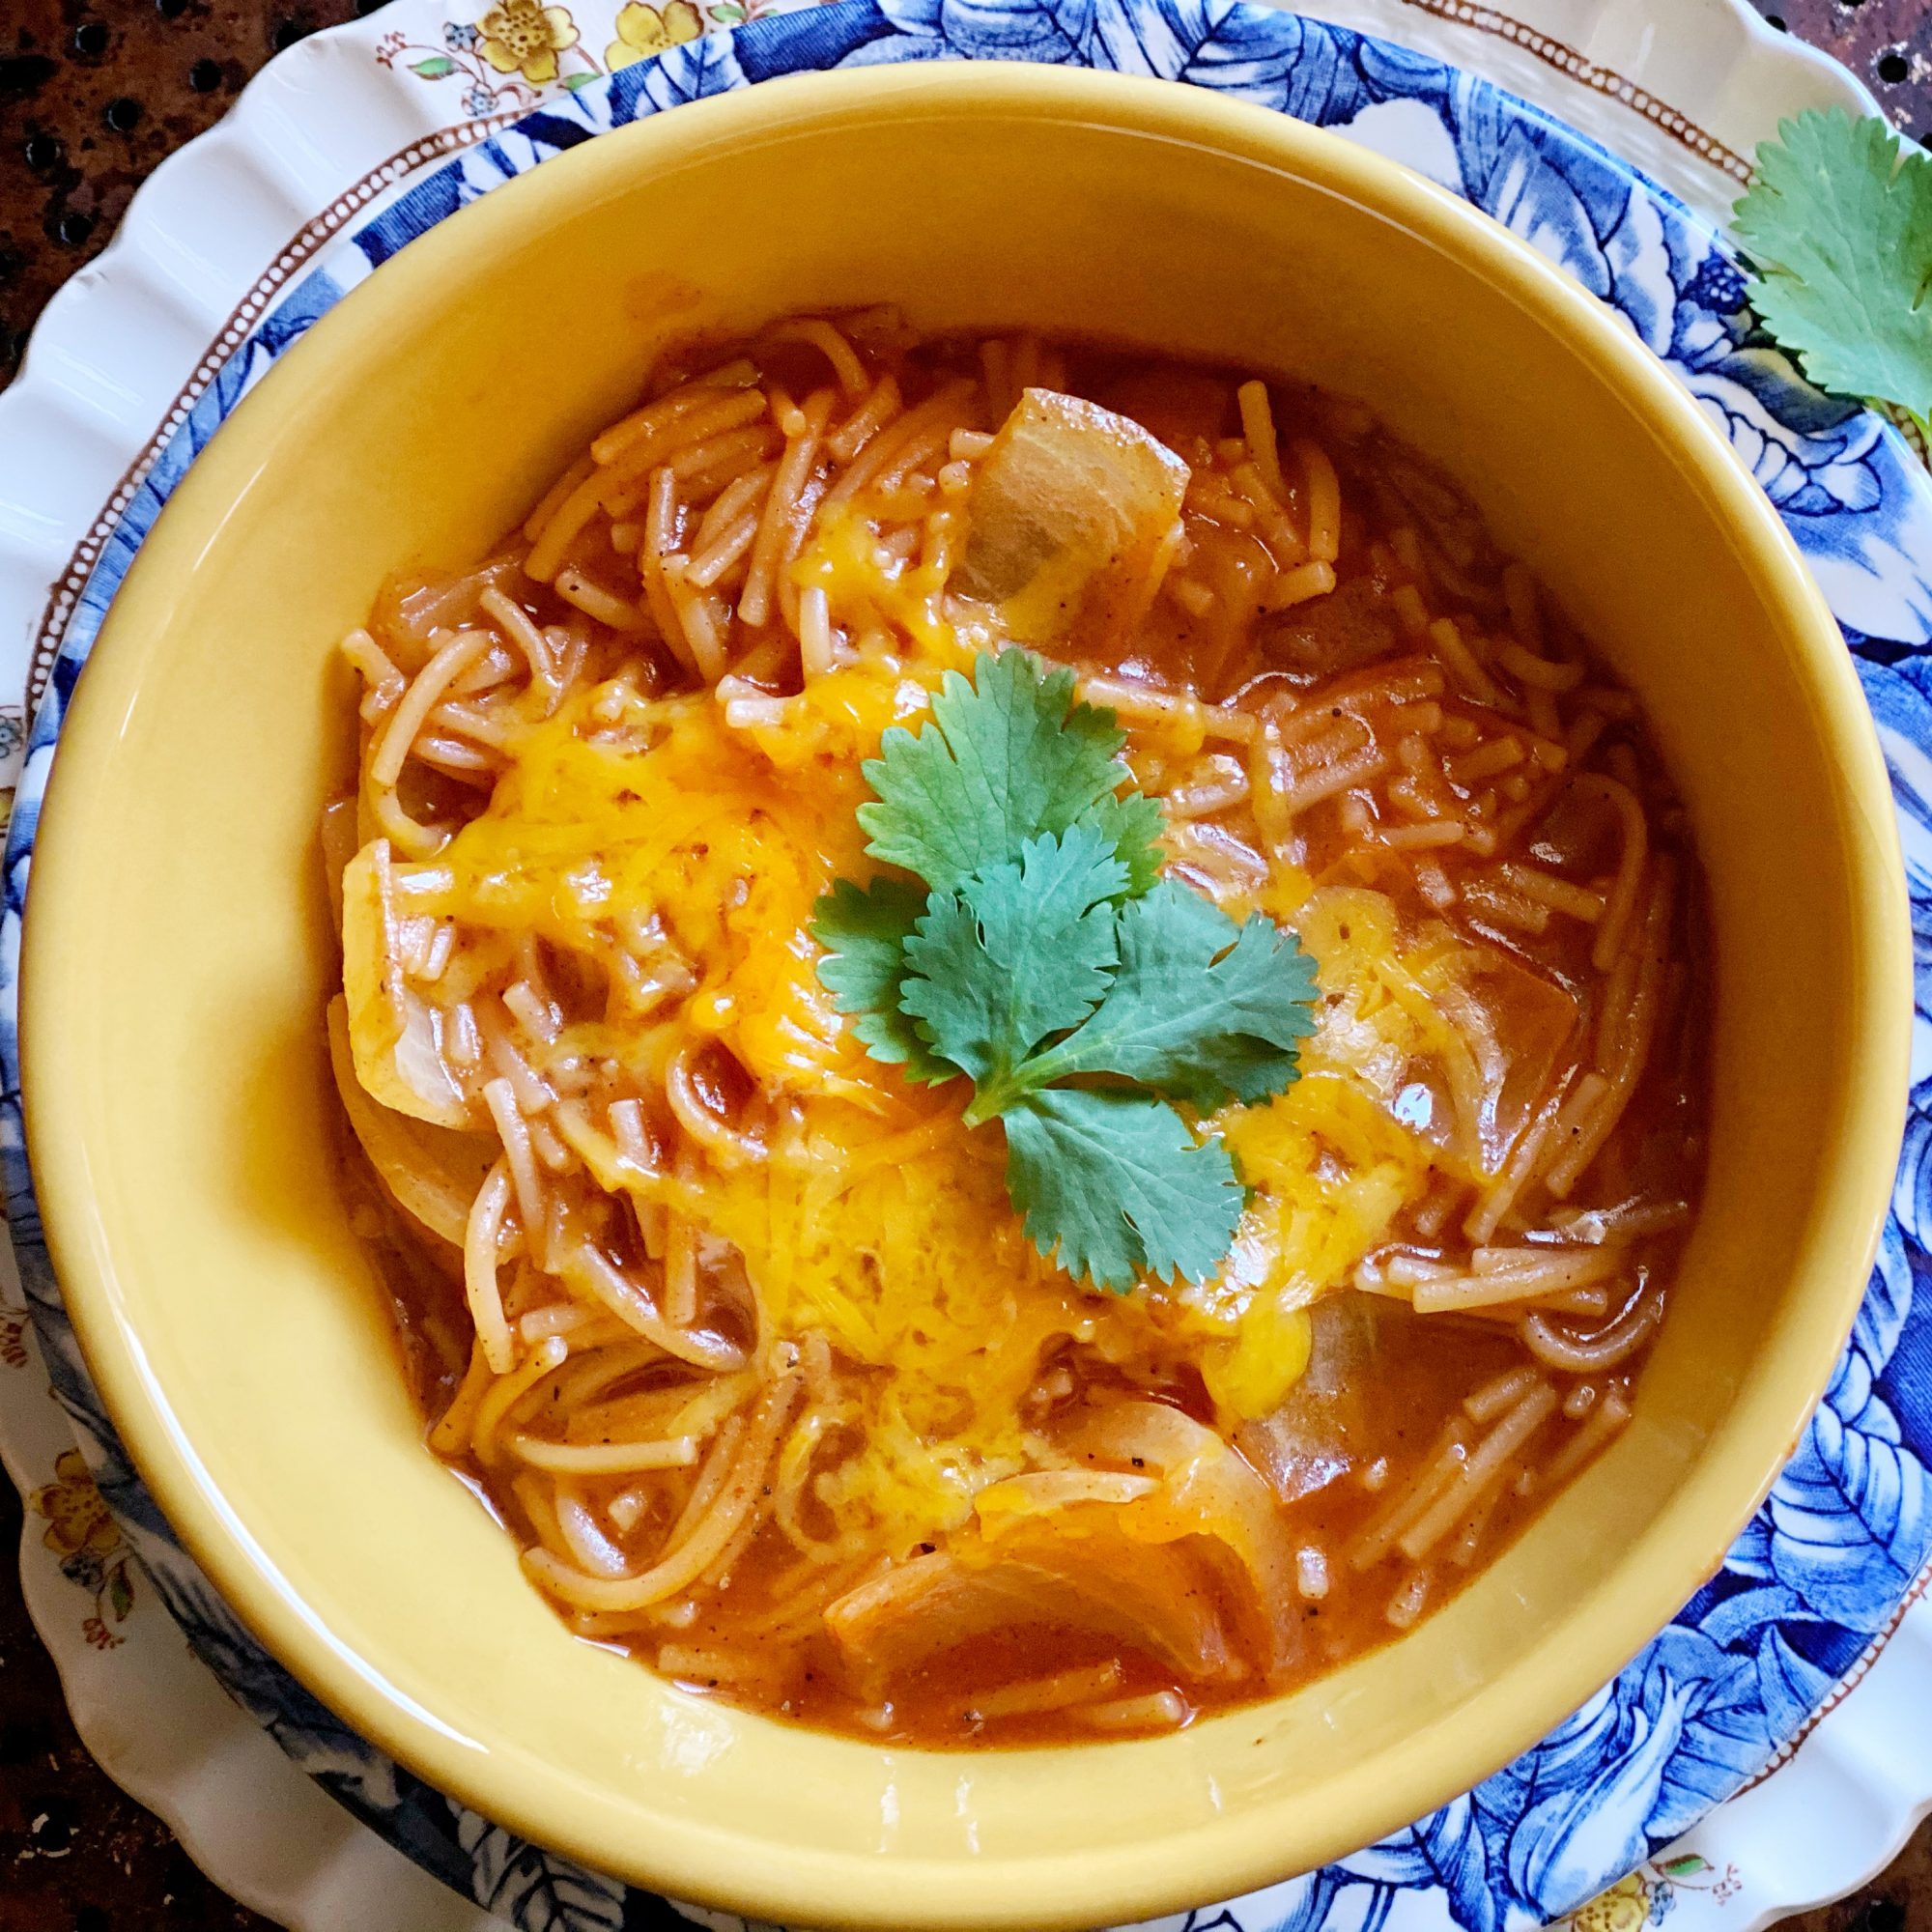 Fideo in a yellow bowl